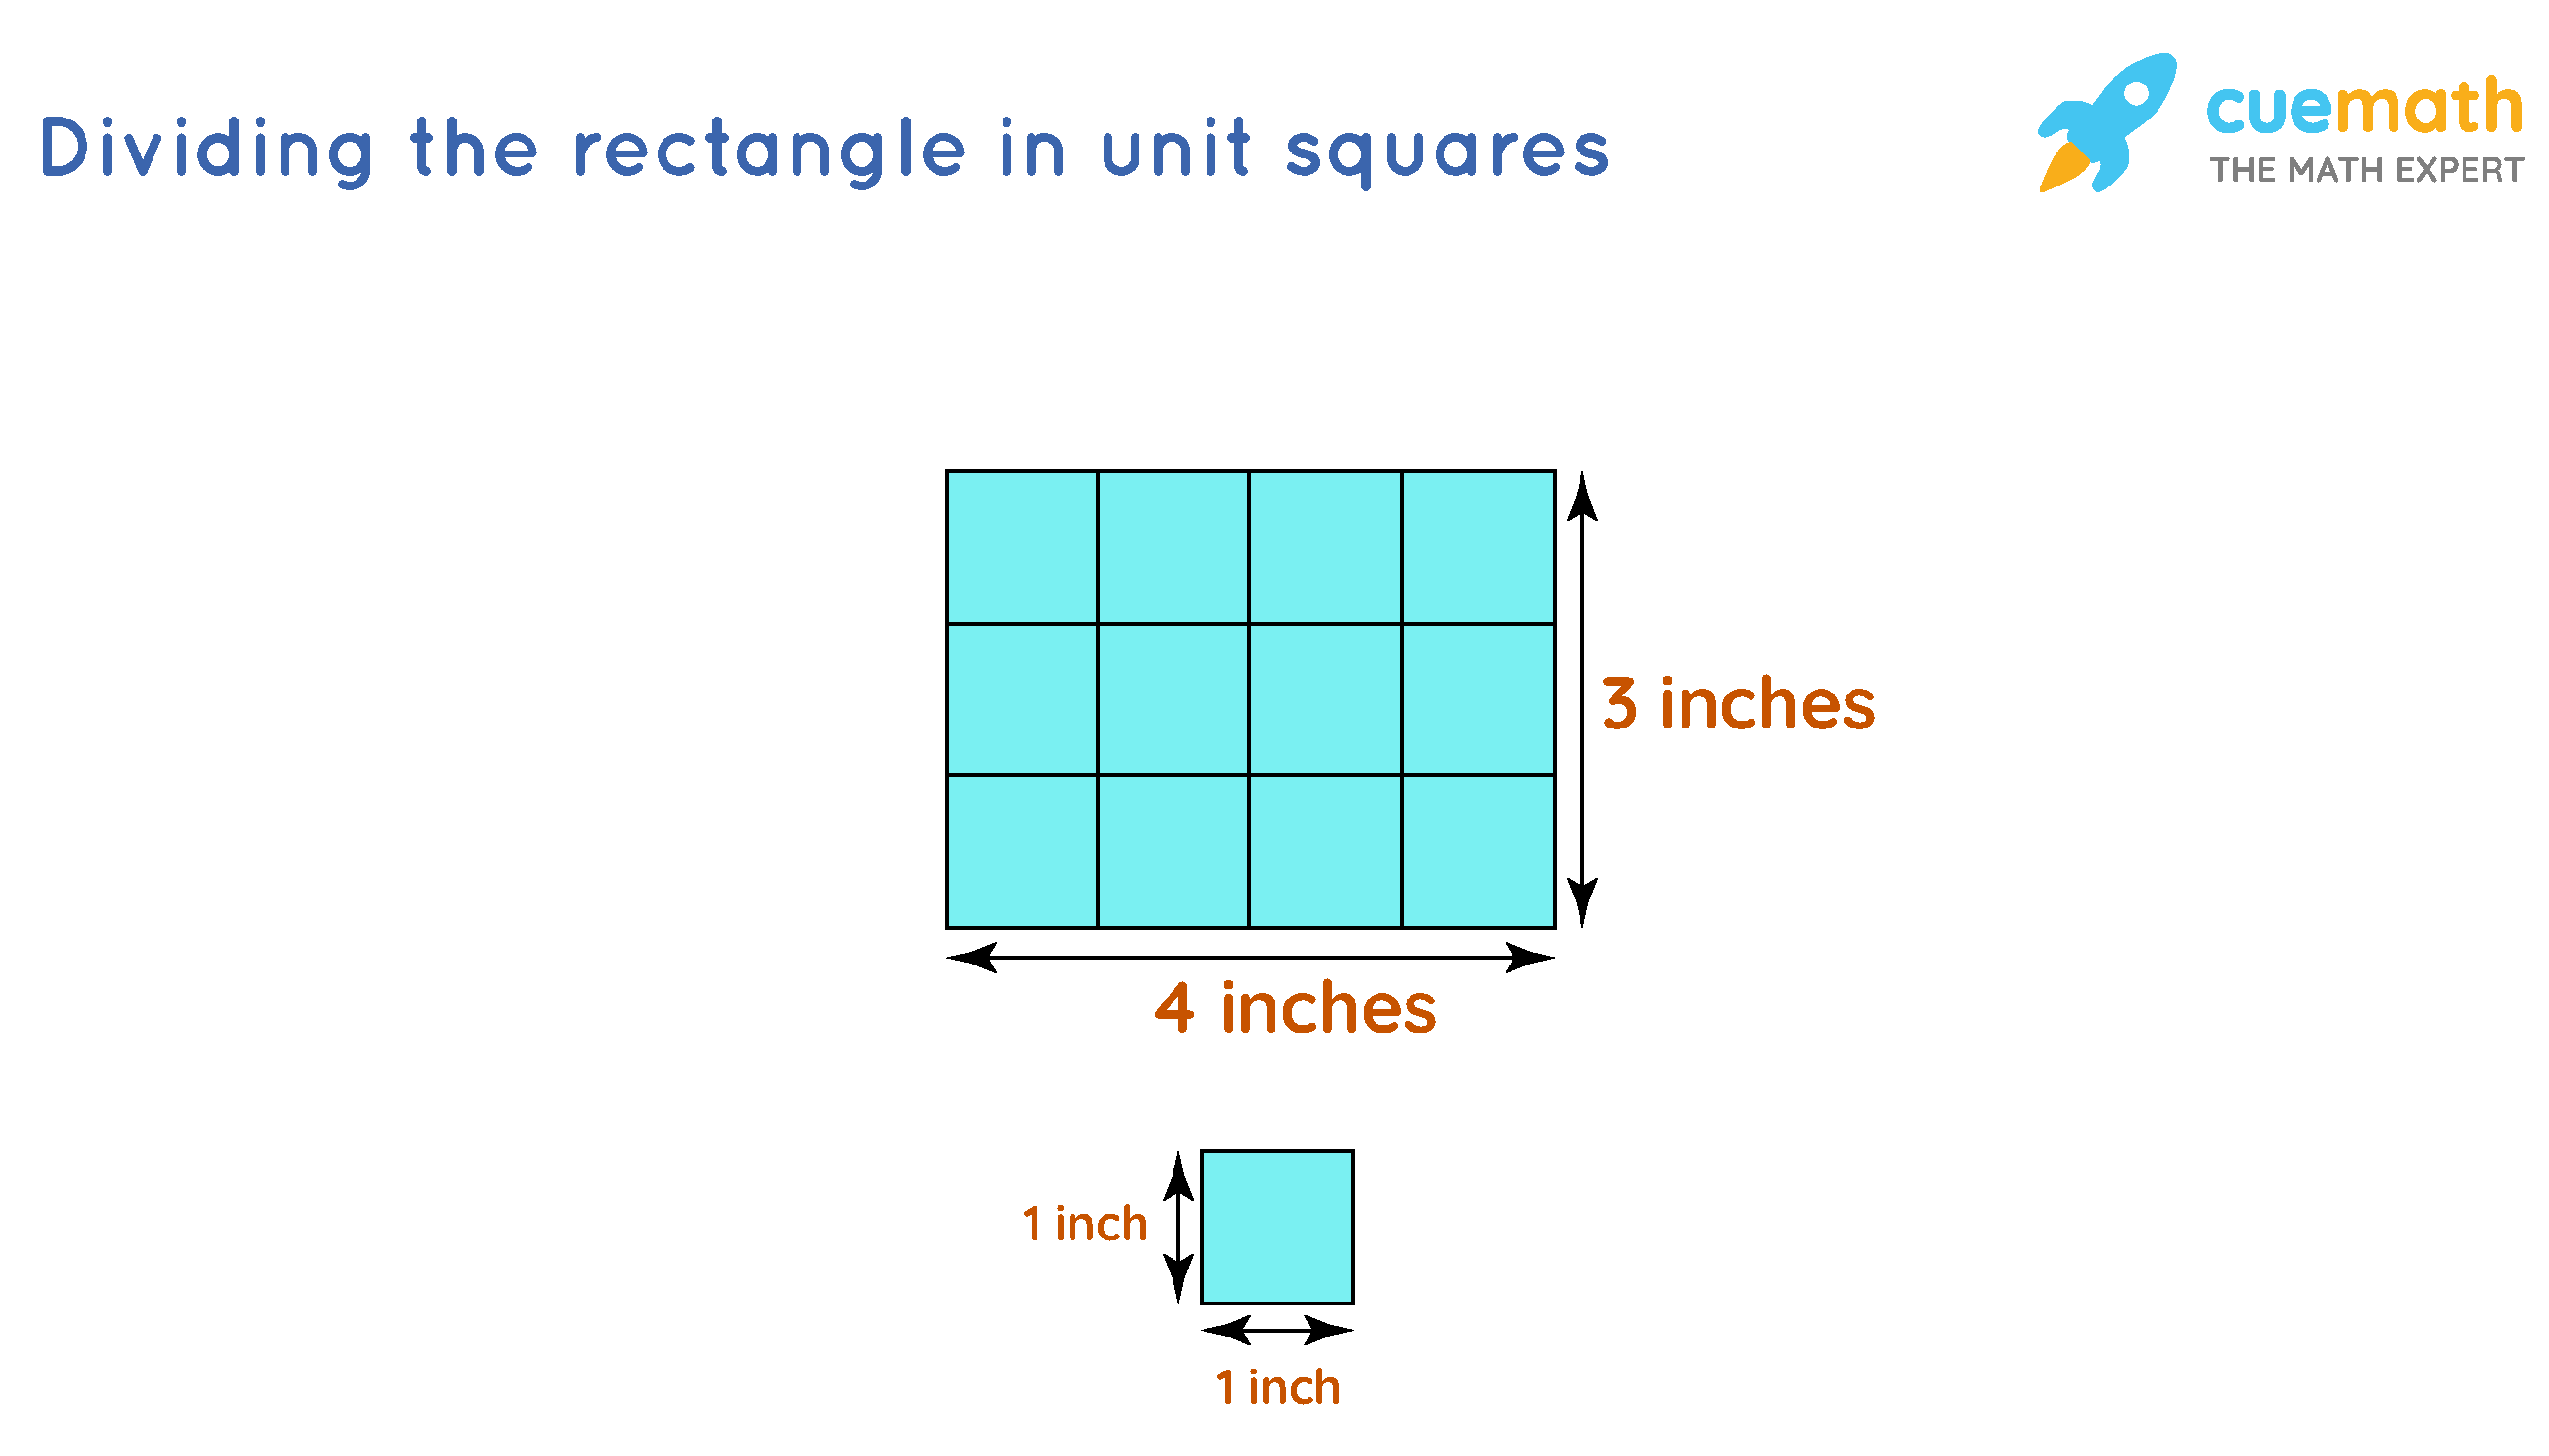 The area of a rectangle is the number of unit squares that can fit into a rectangle.